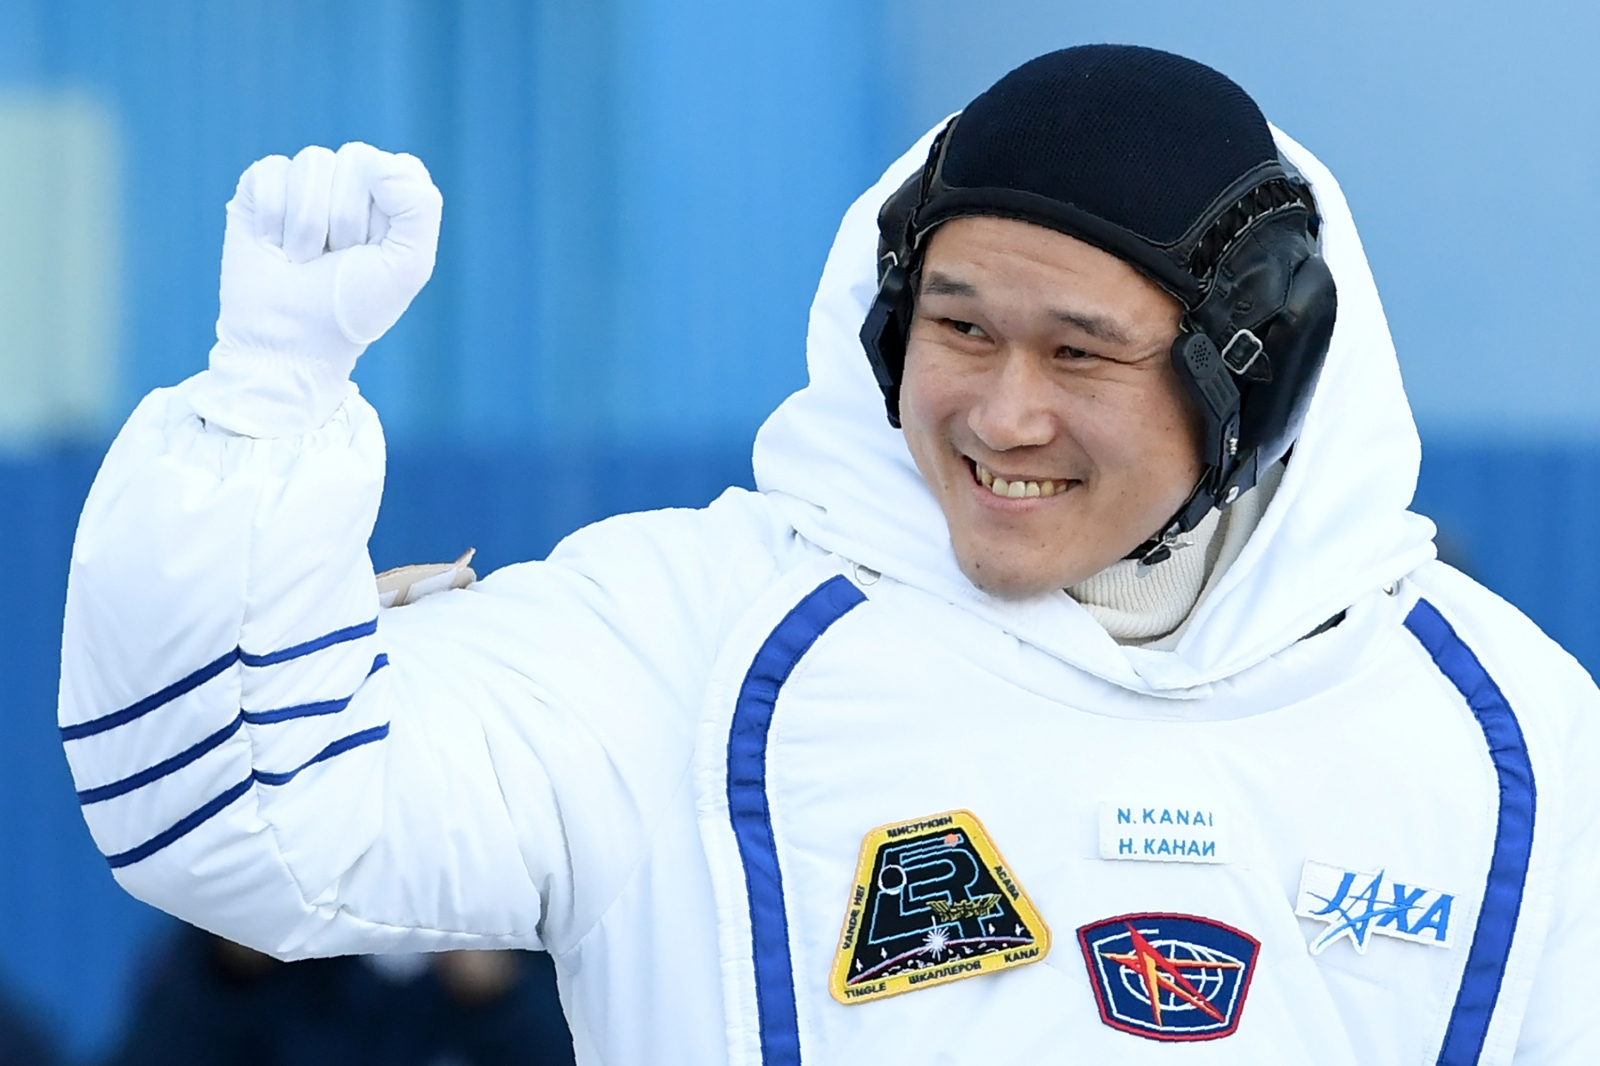 My Bad: Japanese Astronaut Norishige Kanai Apologizes Over Measurement Error